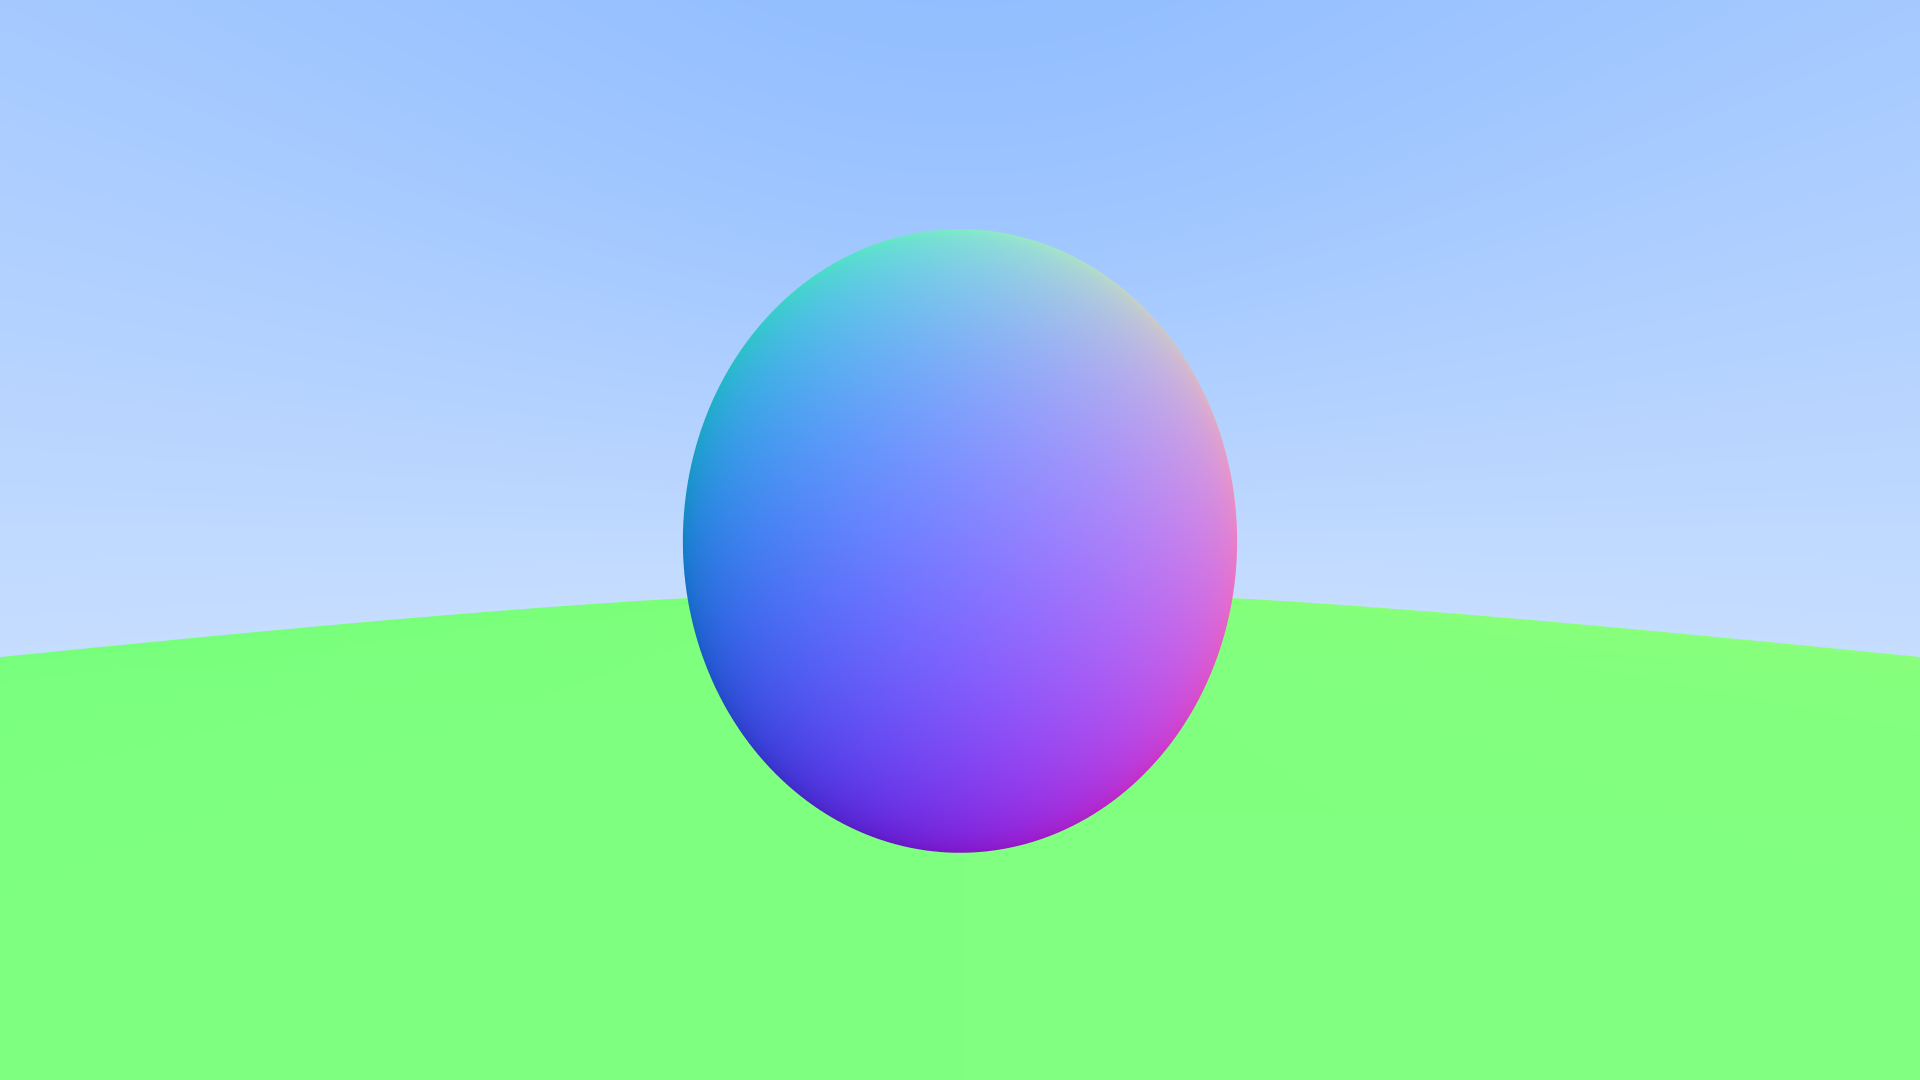 Spheres shaded by their normals with antialiasing